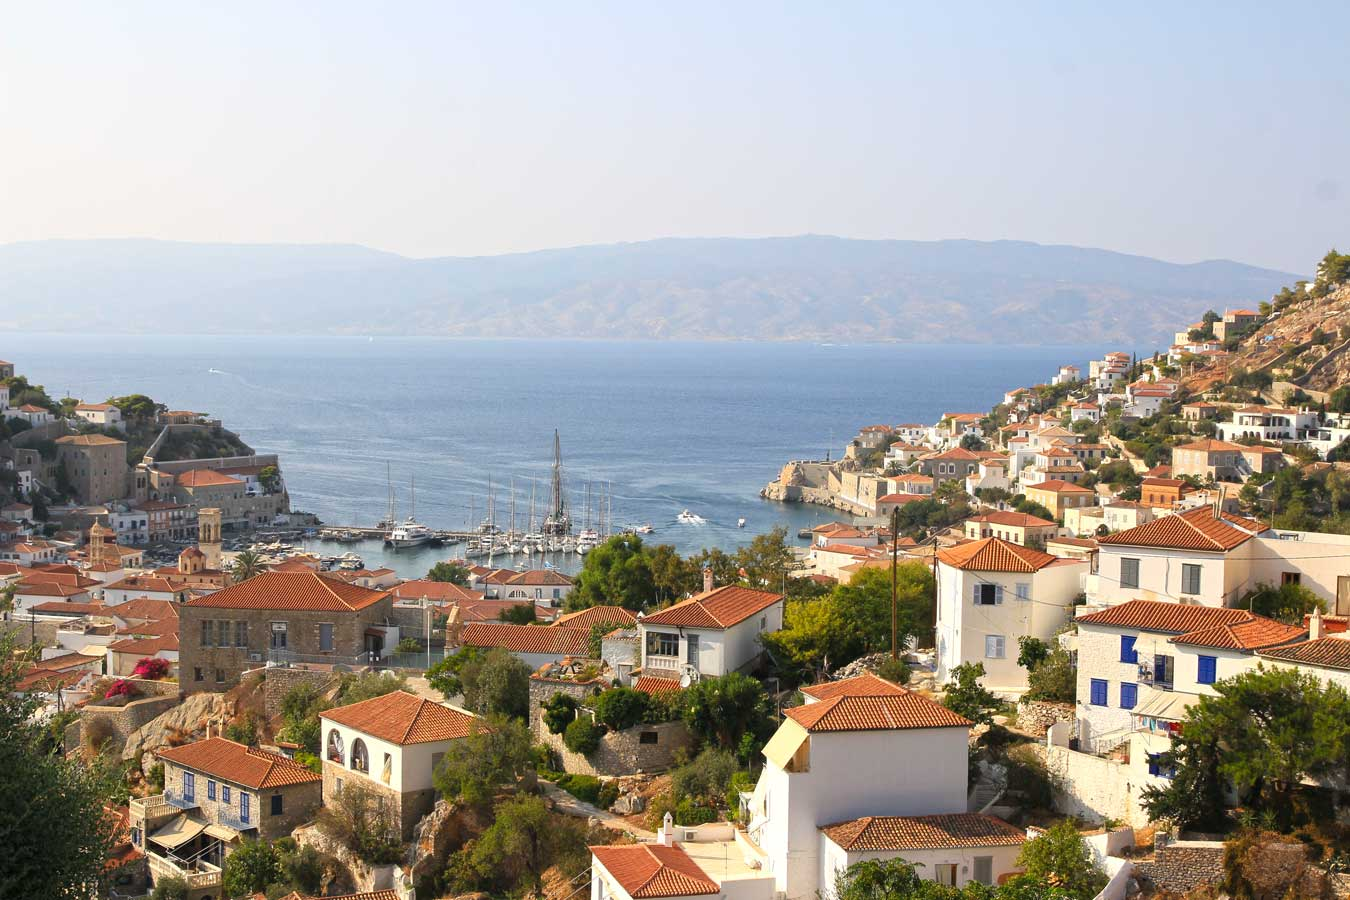 Overlooking Hydra Town, Greece.